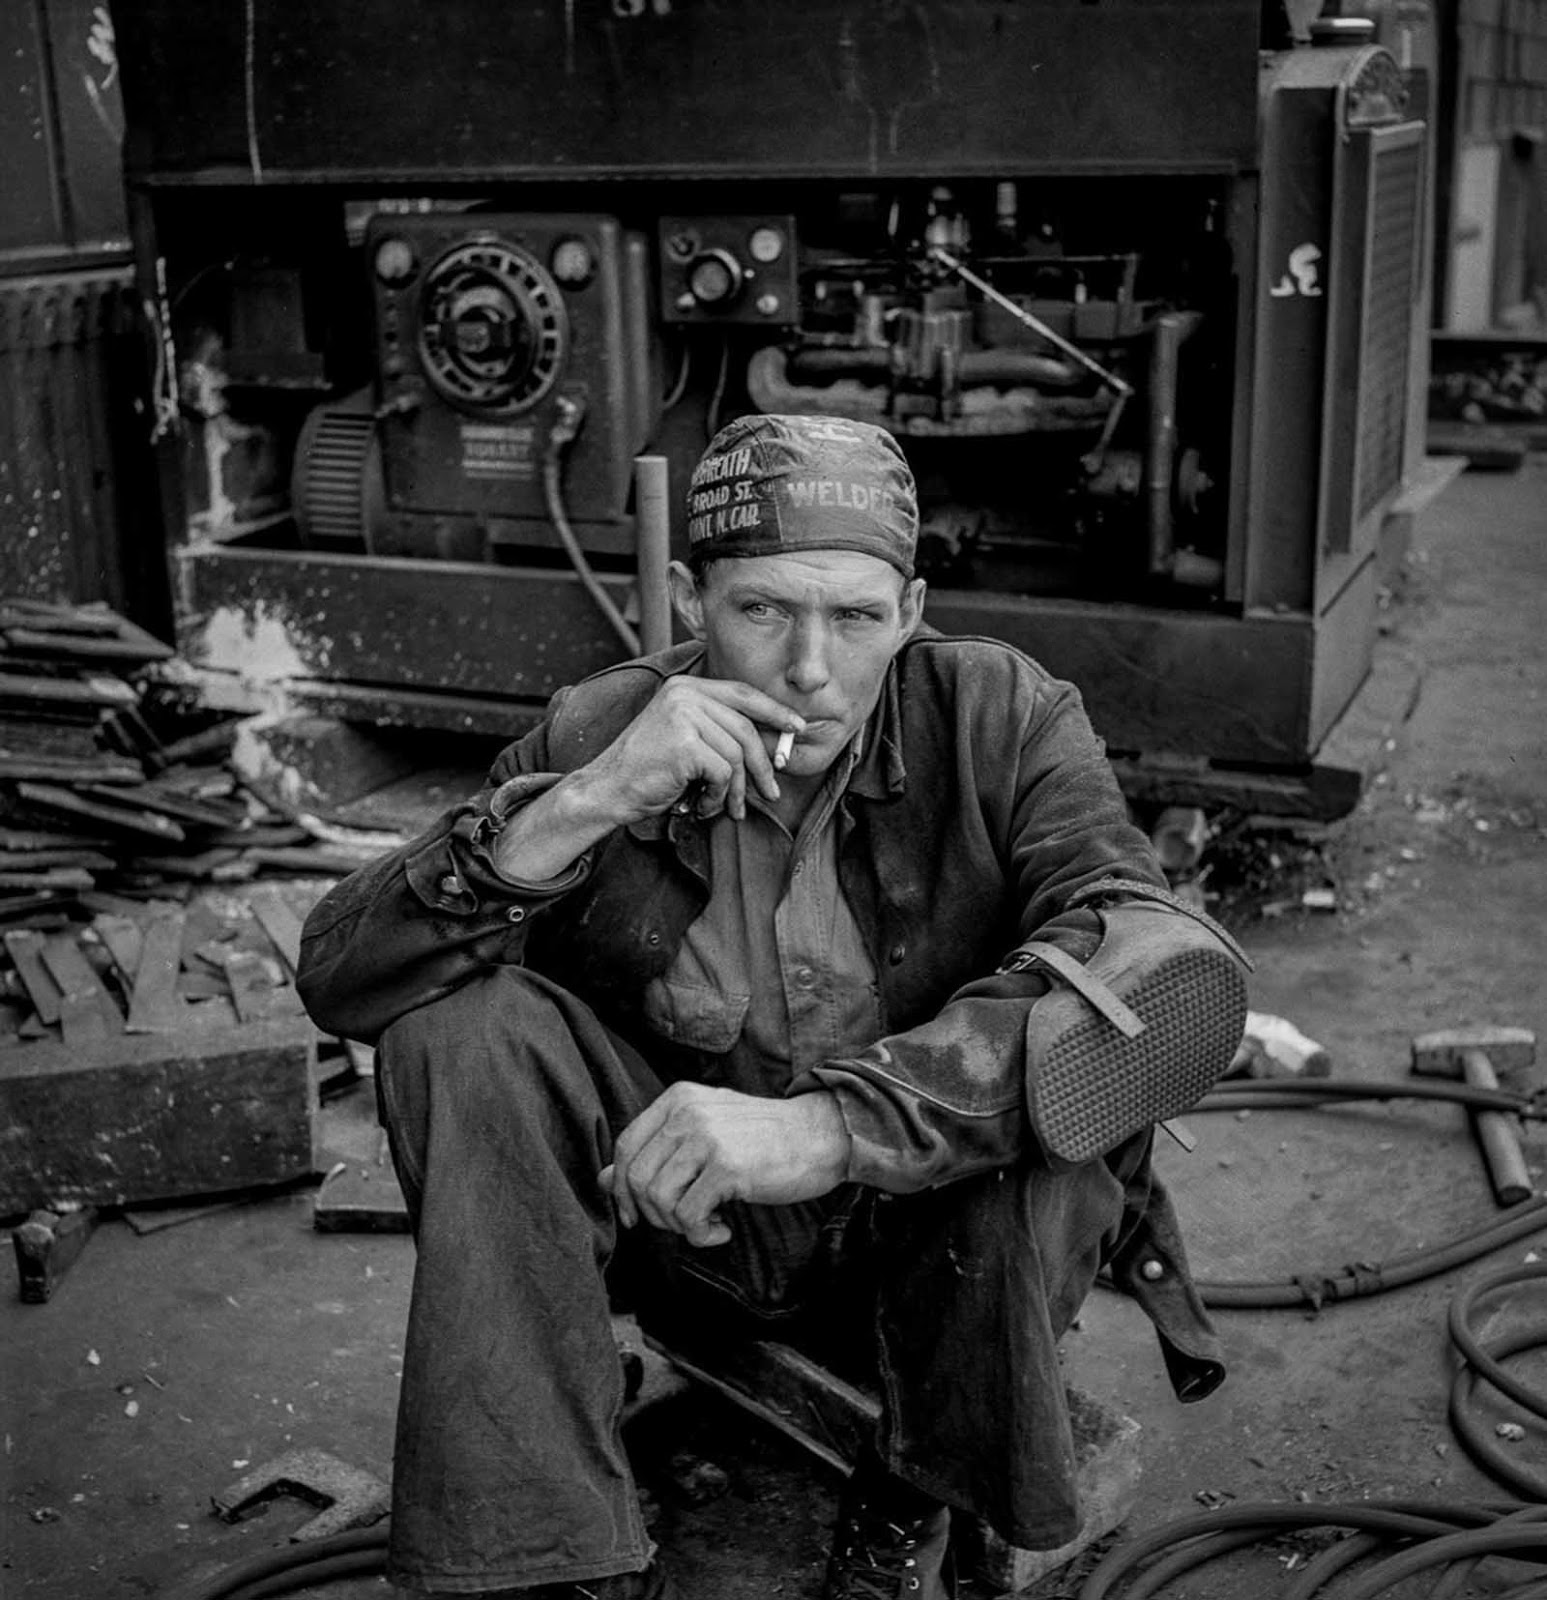 A welder rests during his lunch hour.